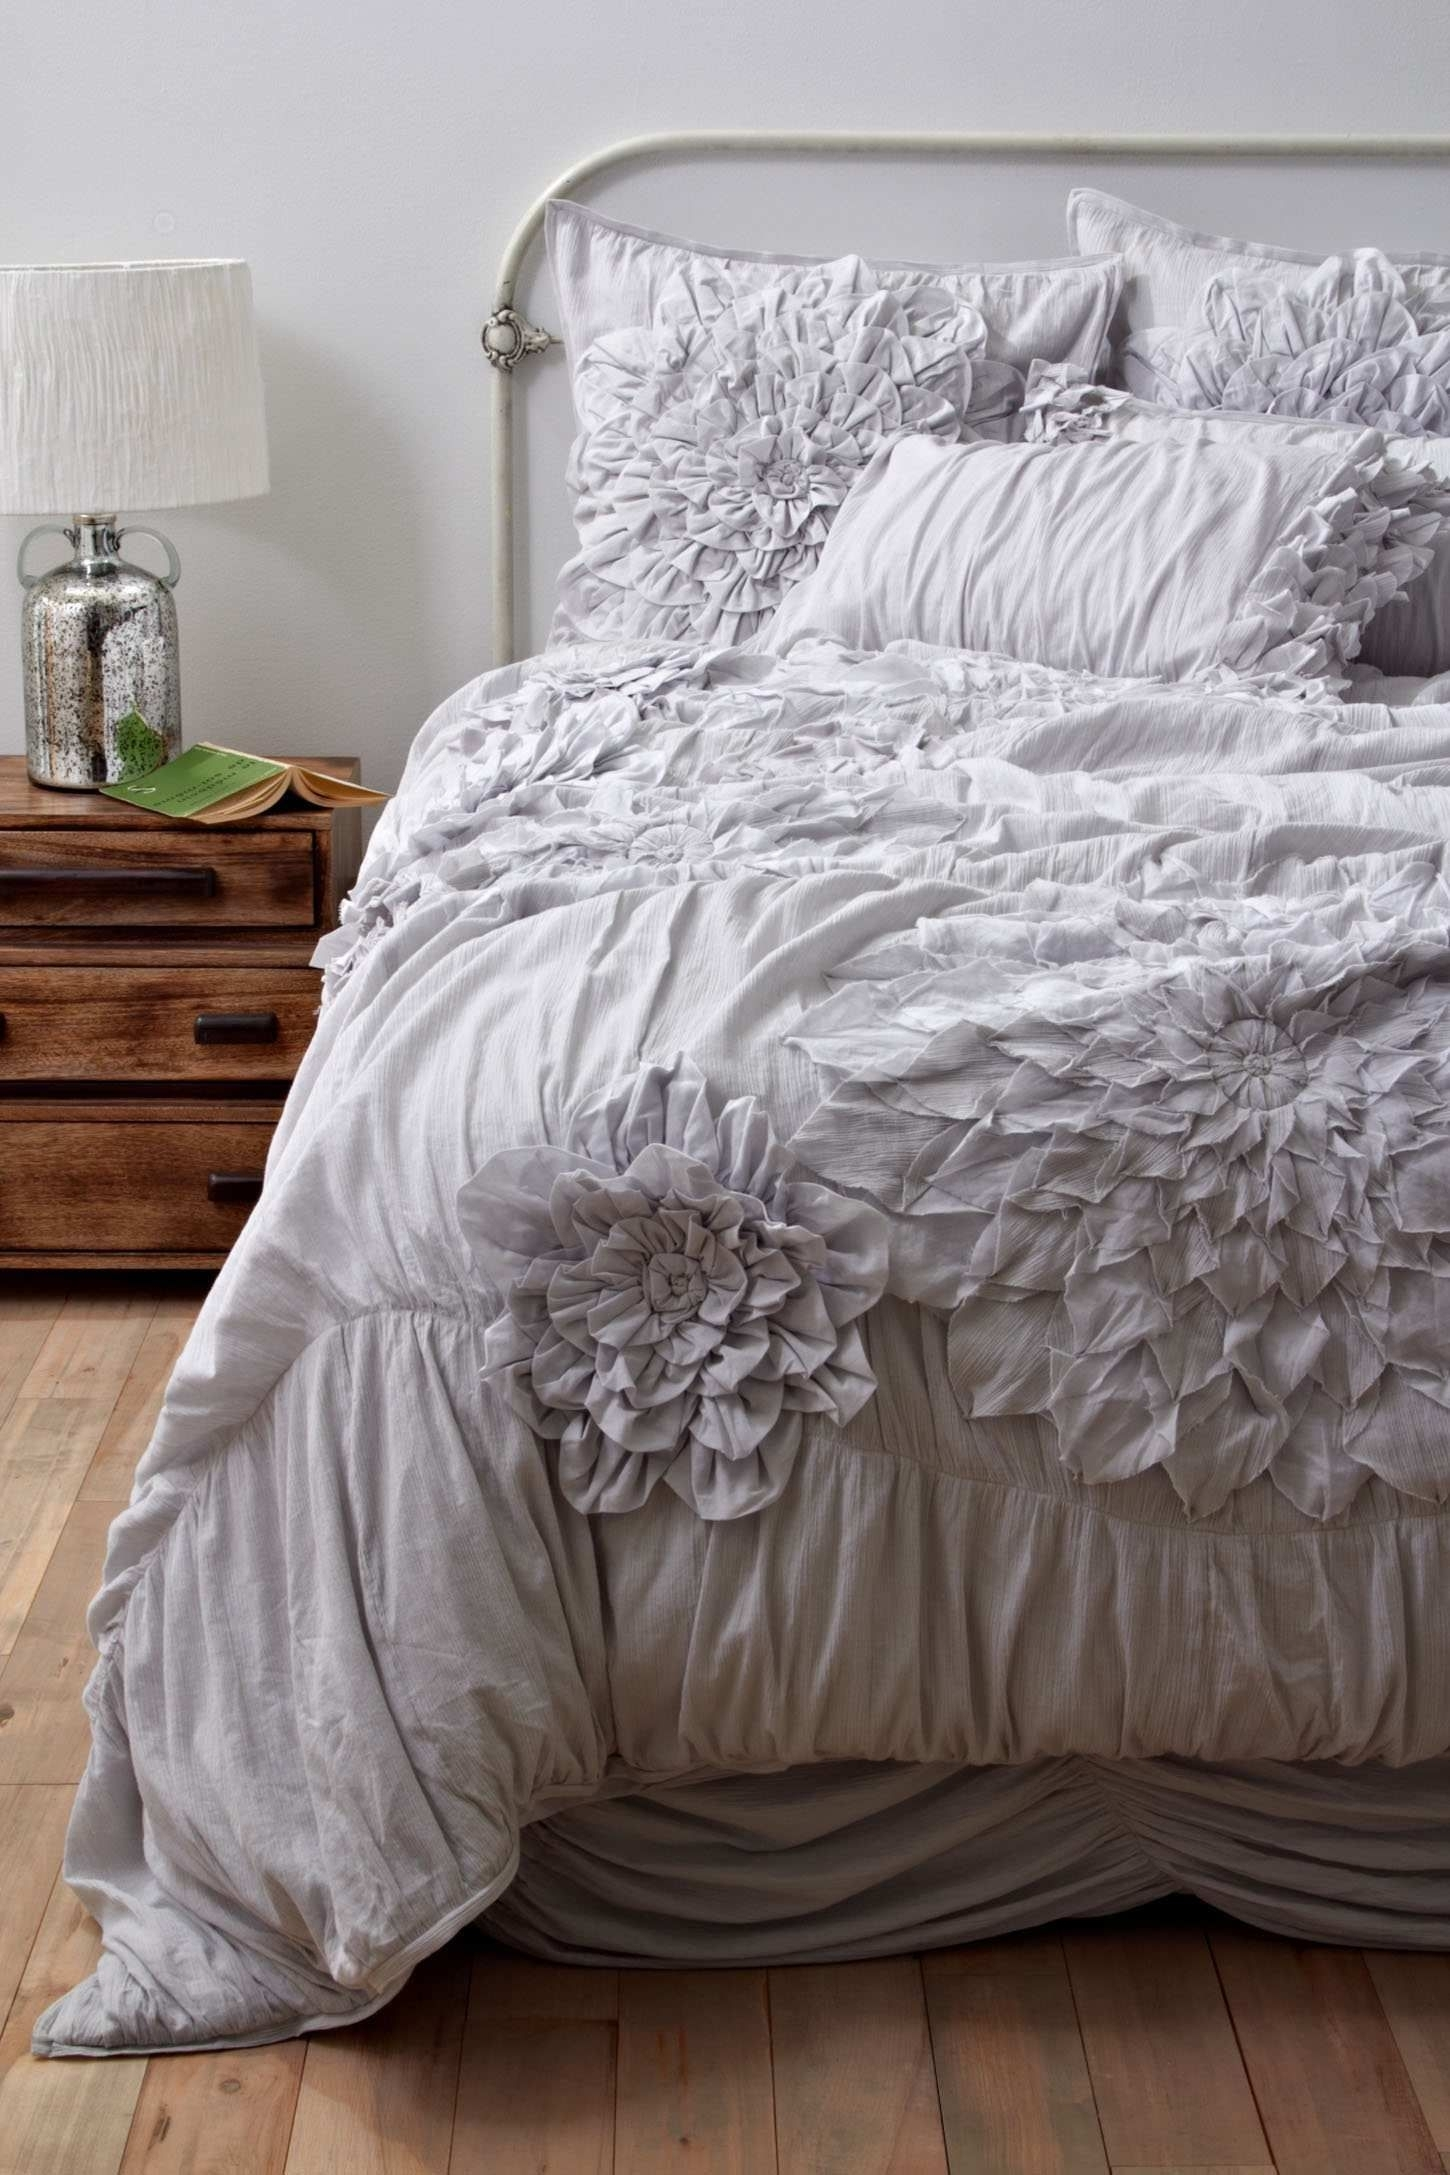 Chic Bed Sets Ideas On Foter